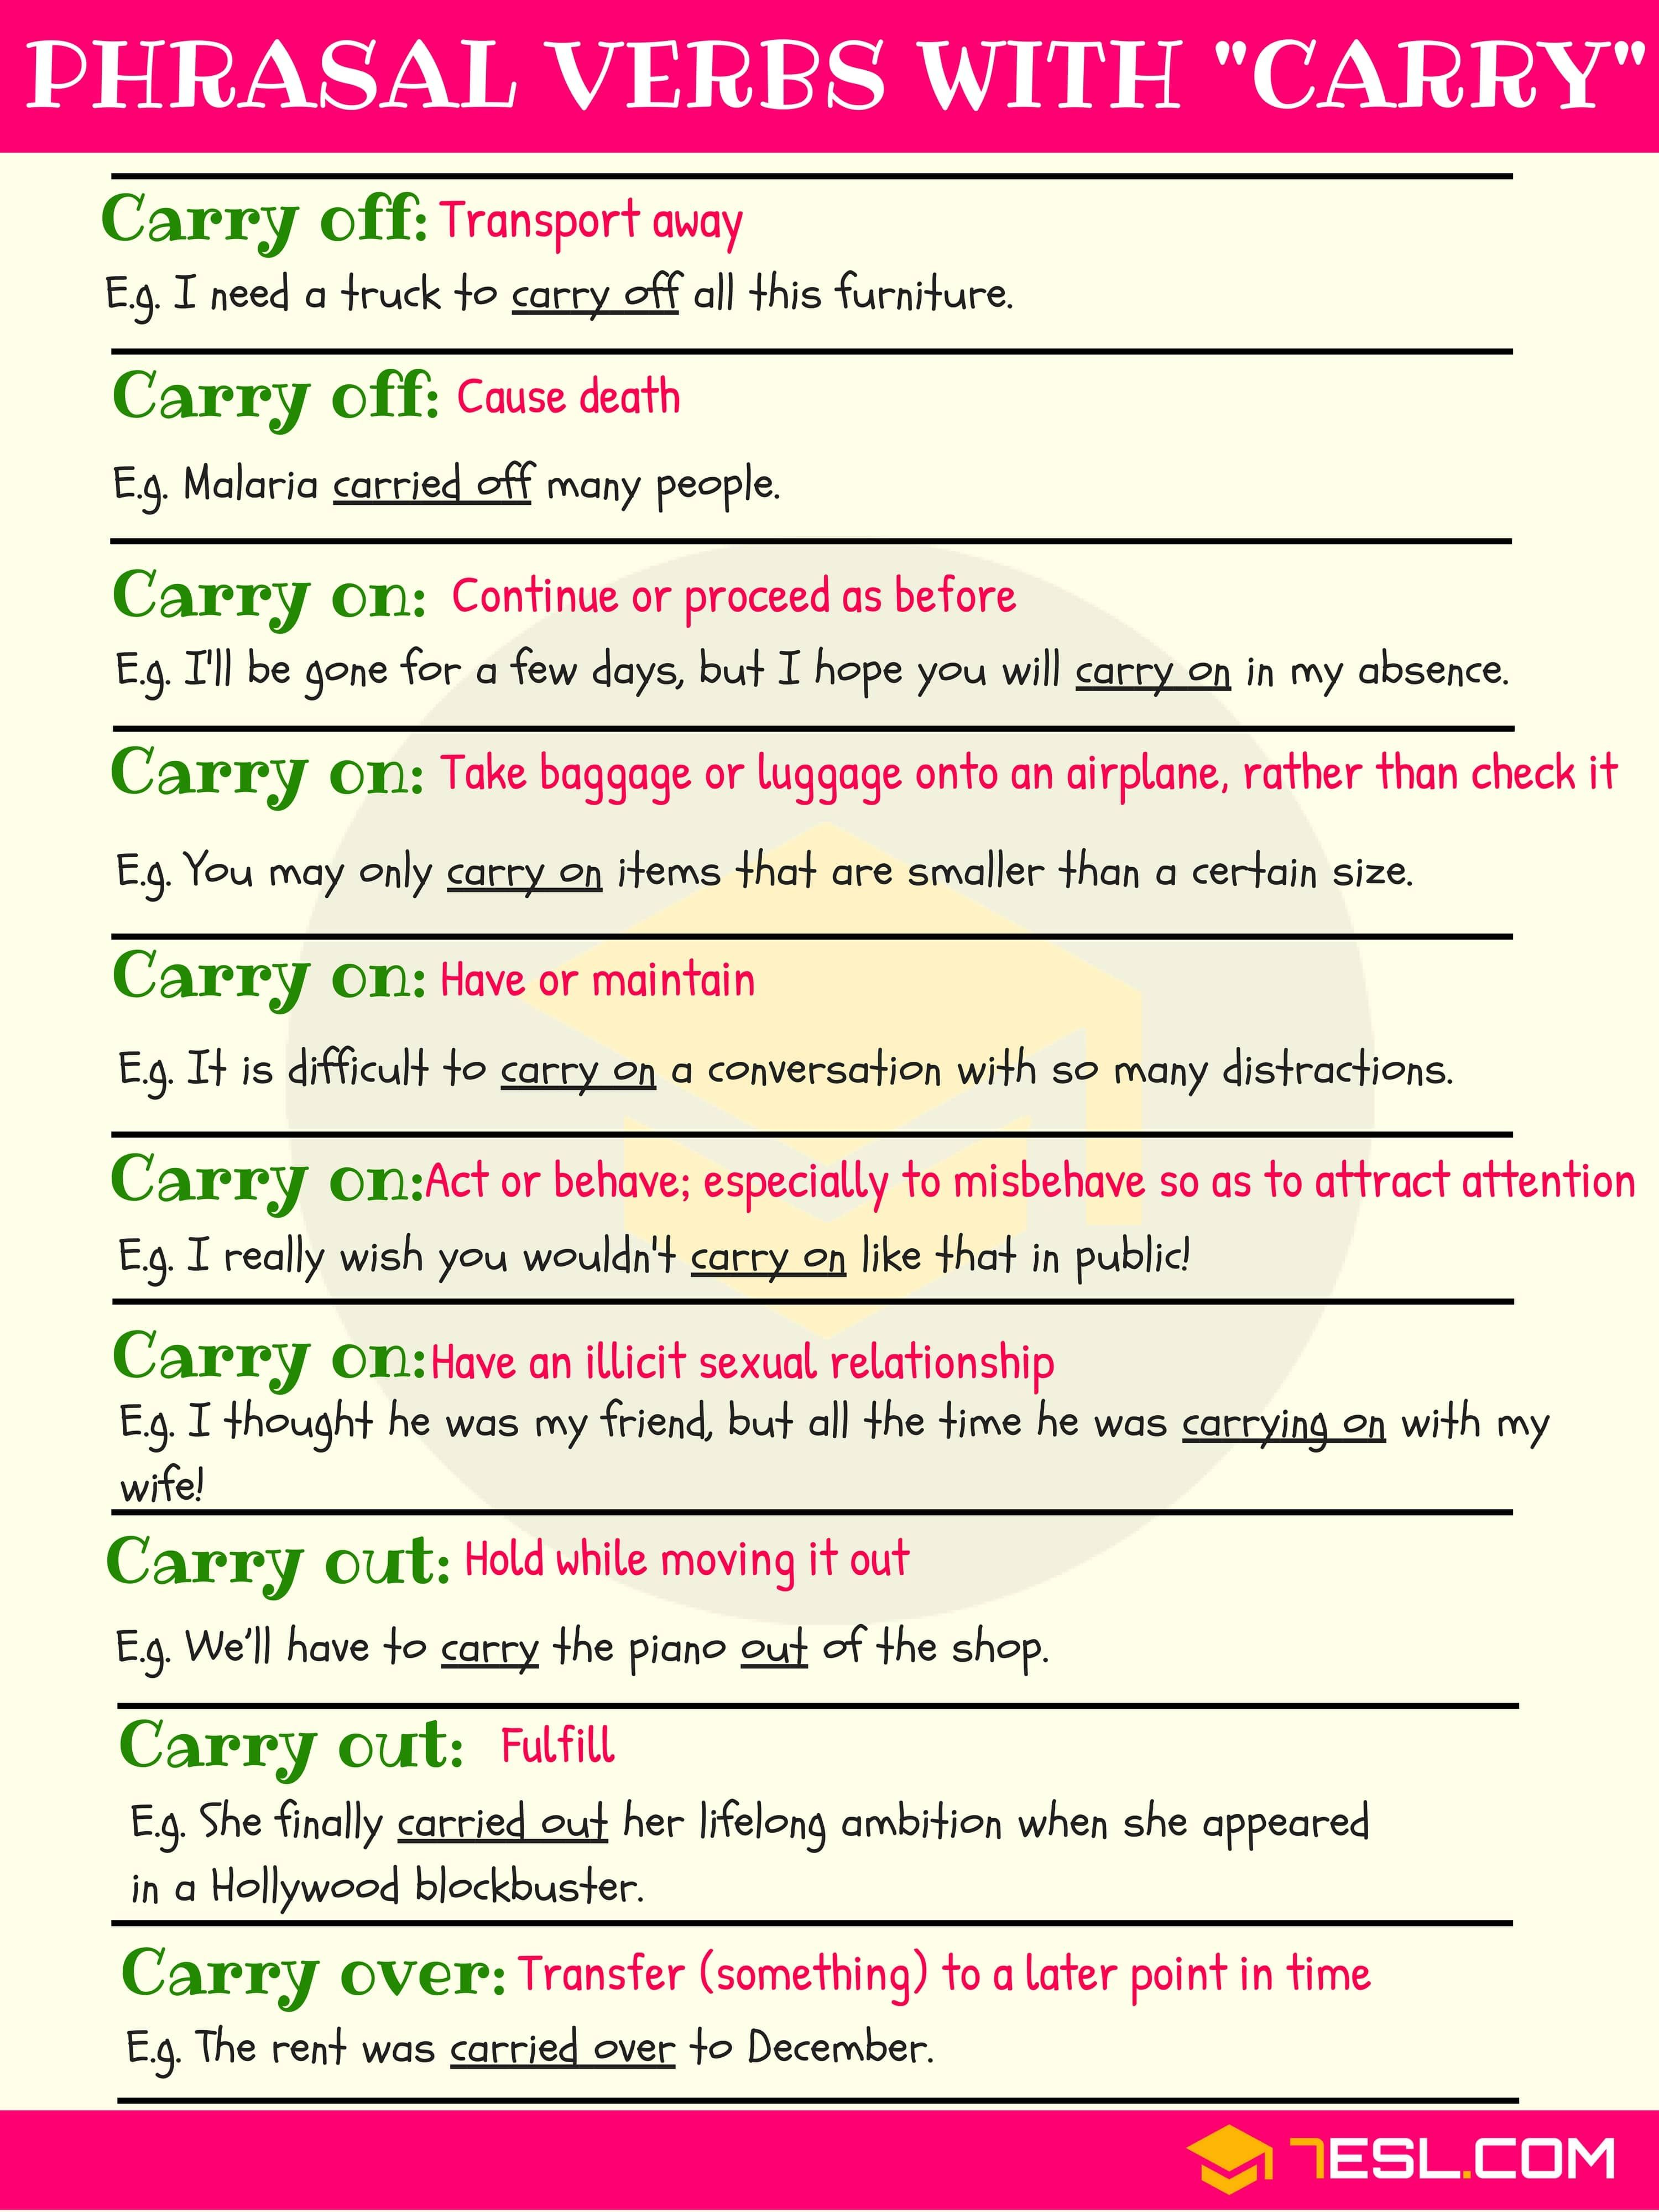 Phrasal Verbs With Carry Carry Off Carry On Carry Out Carry Over 7esl Learn English Words Learn English English Vocabulary Words [ 4000 x 3000 Pixel ]